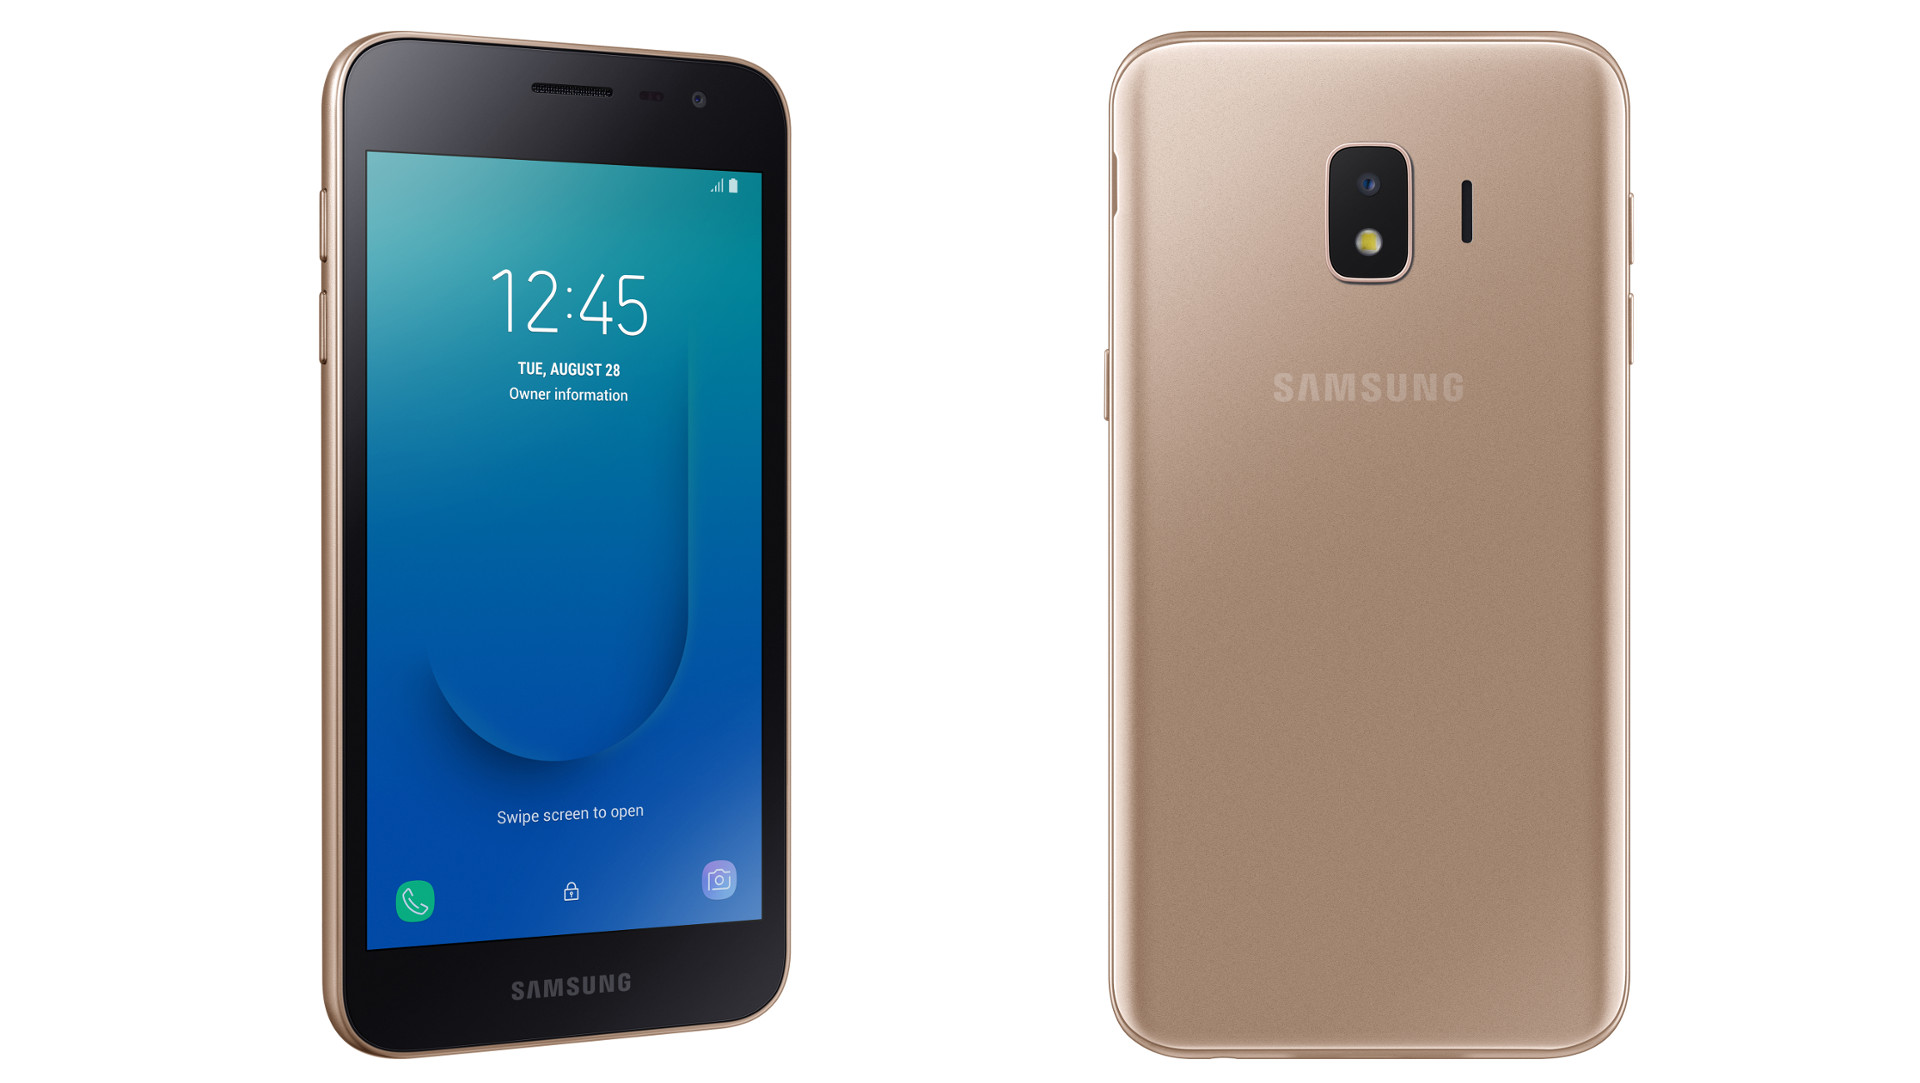 Samsung S Debut Android Go Smartphone How Good Is The Samsung